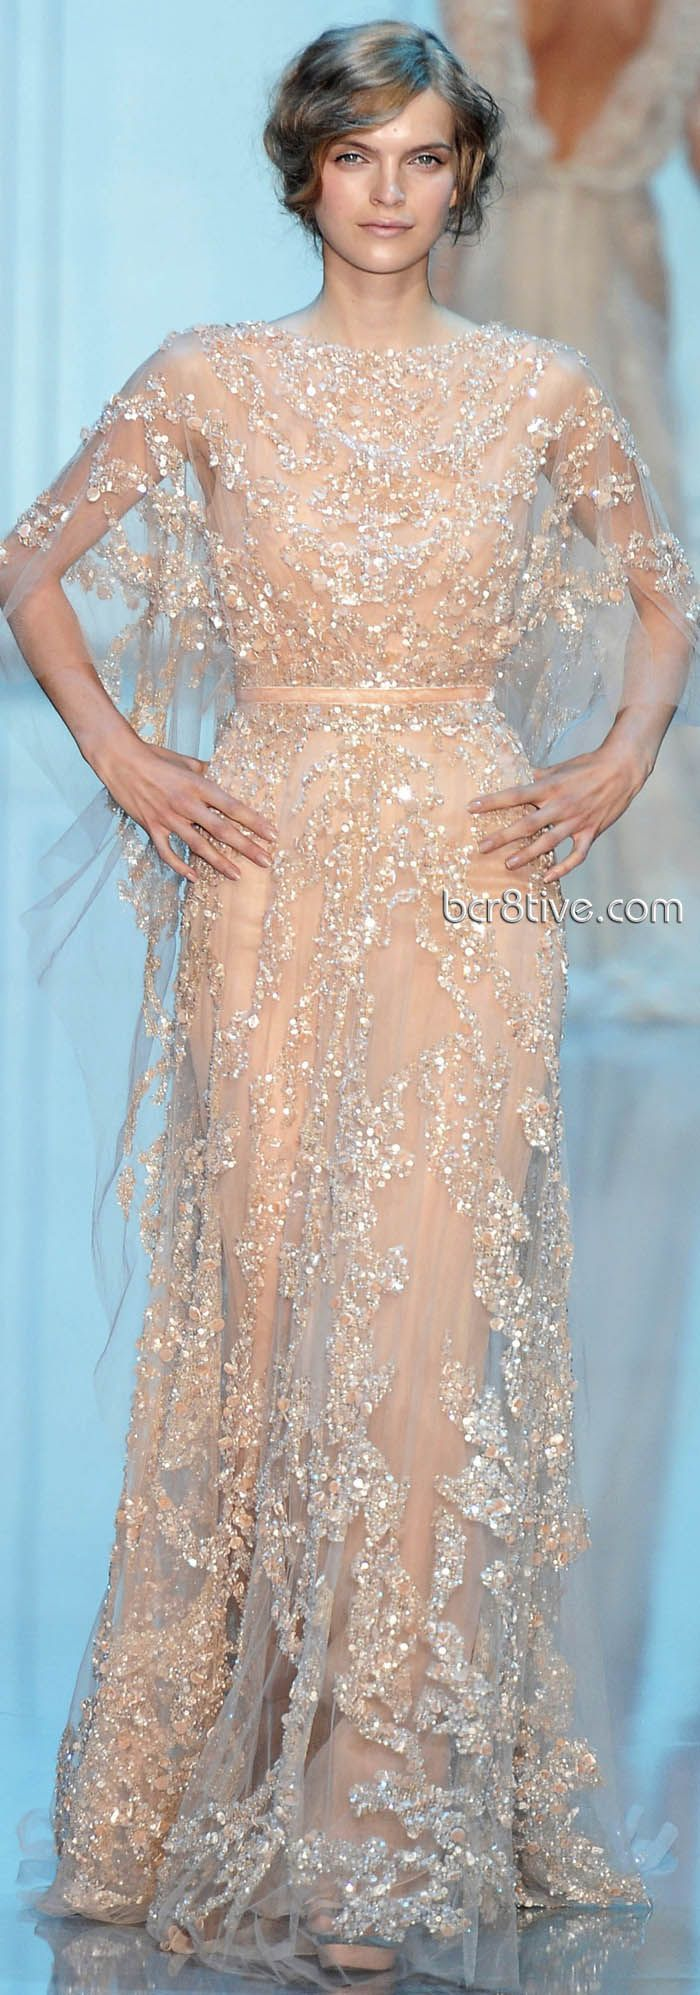 Elie saab fall winter haute couture collection gala dress